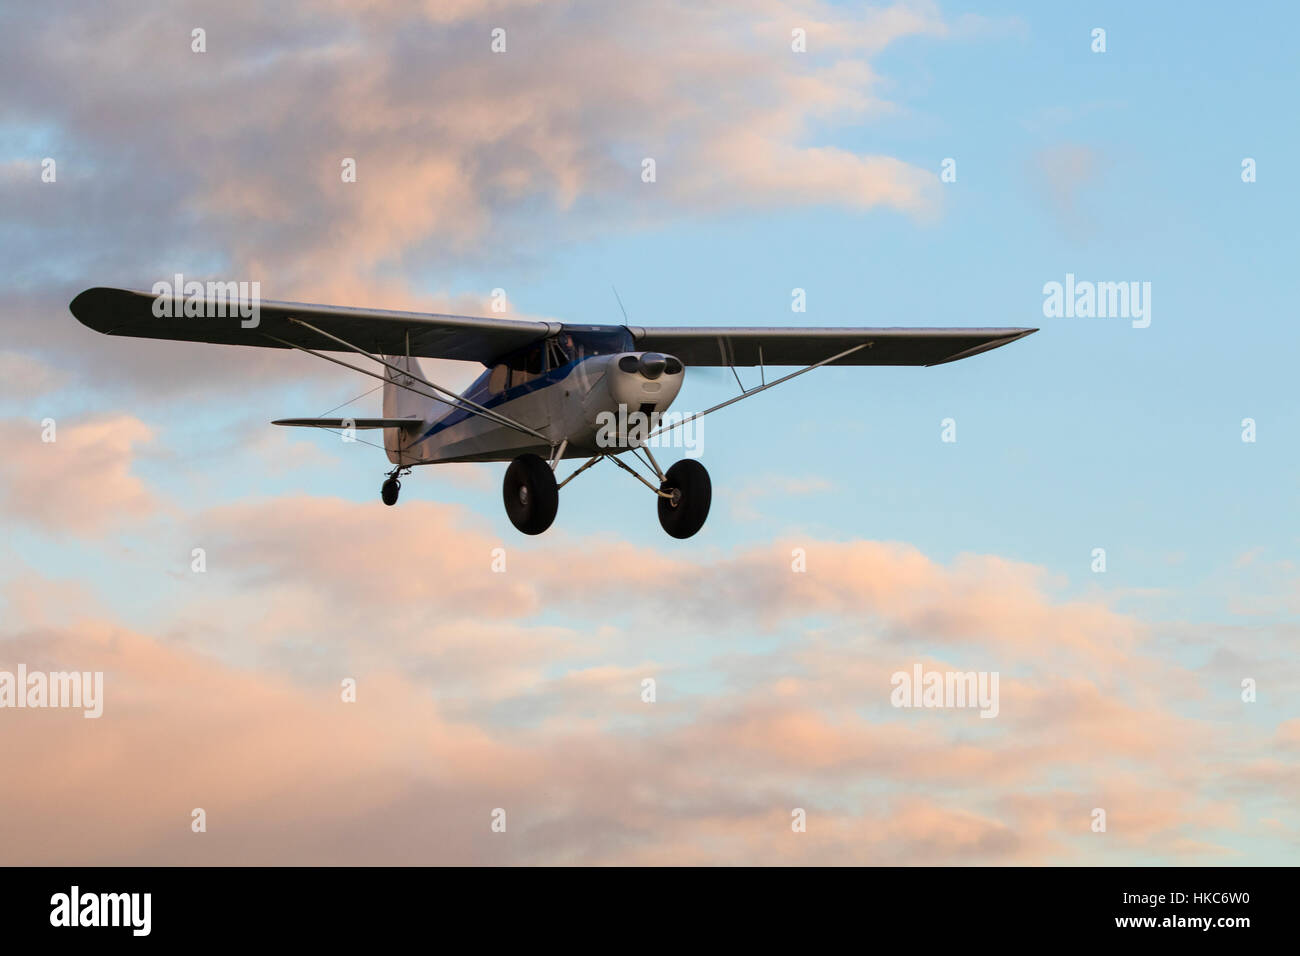 Airplane flying at the air show during twilight - Stock Image